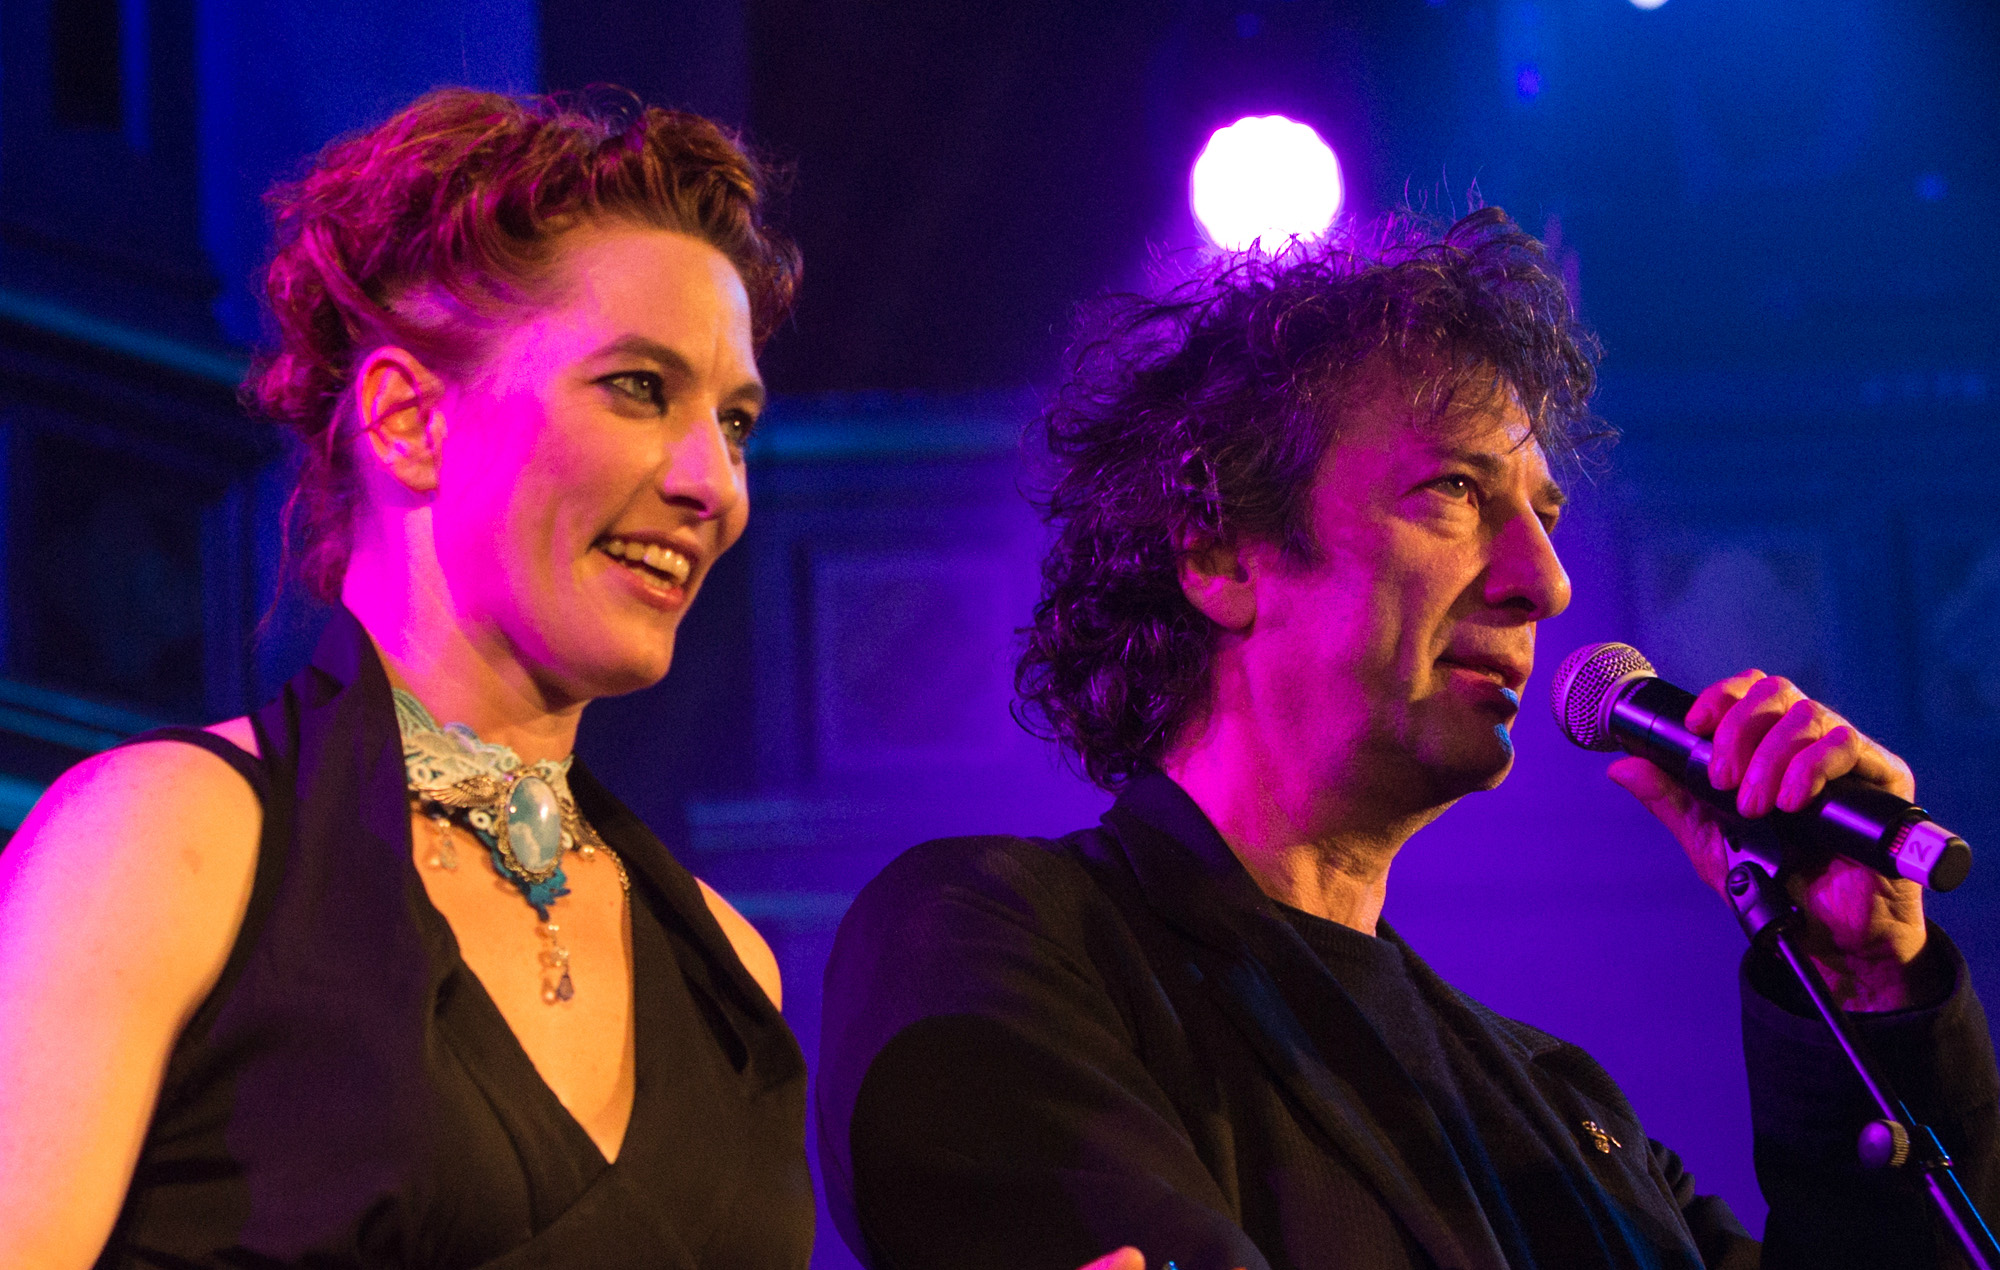 Amanda Palmer announces bushfire benefit with Neil Gaiman, releases Midnight Oil cover with Missy Higgins | NME Australia